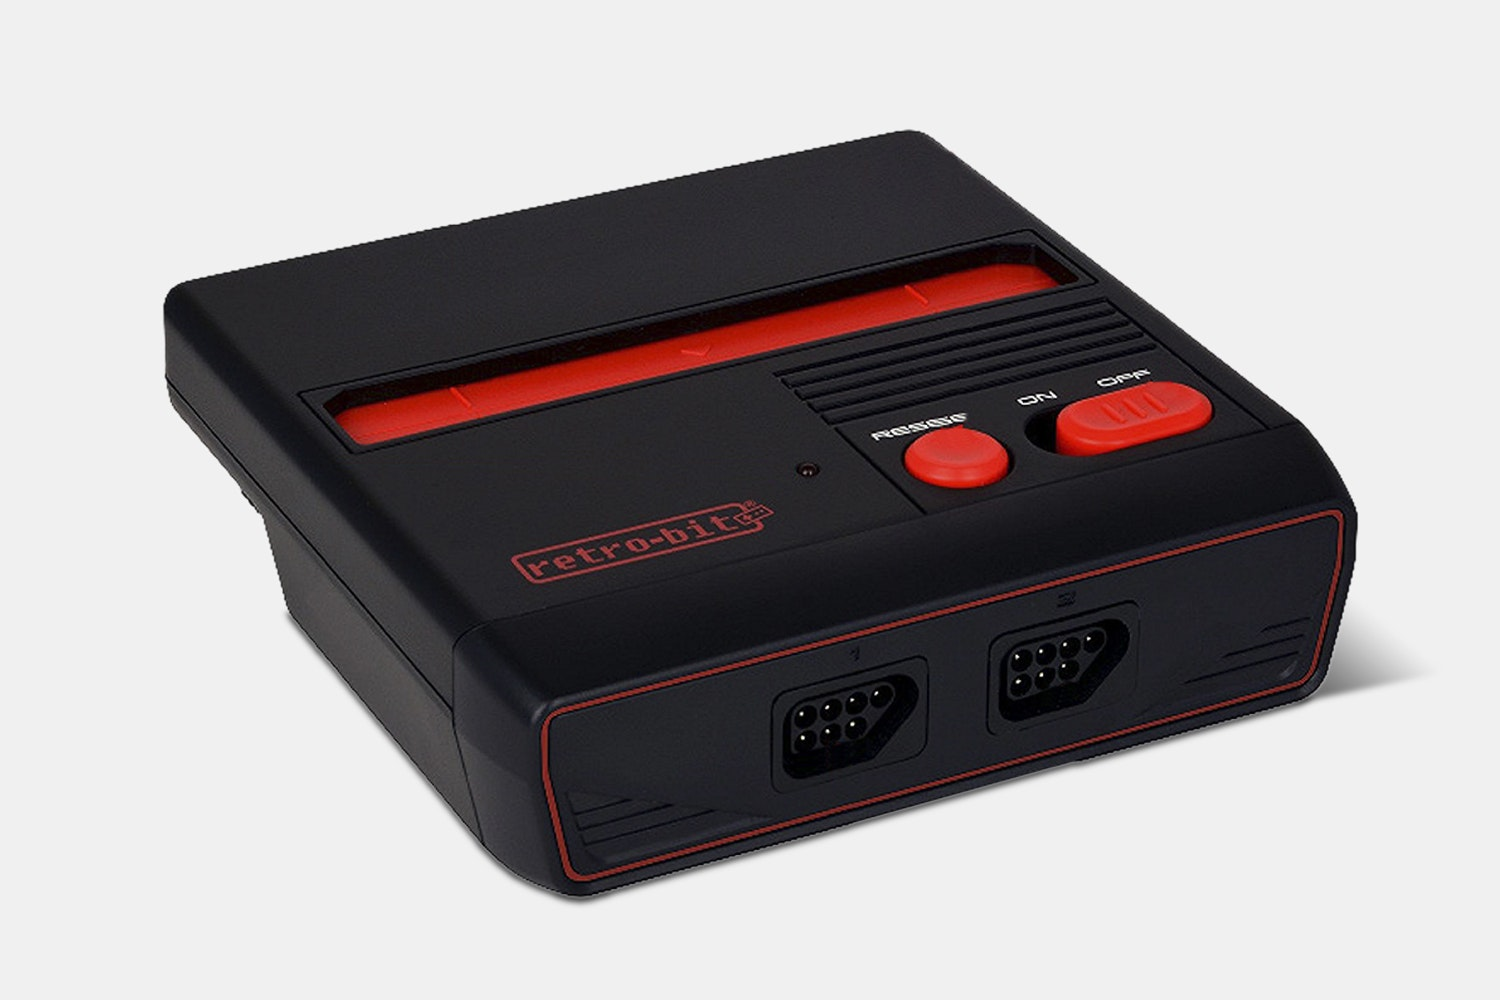 Retro-Bit RES Plus NES Gaming Console